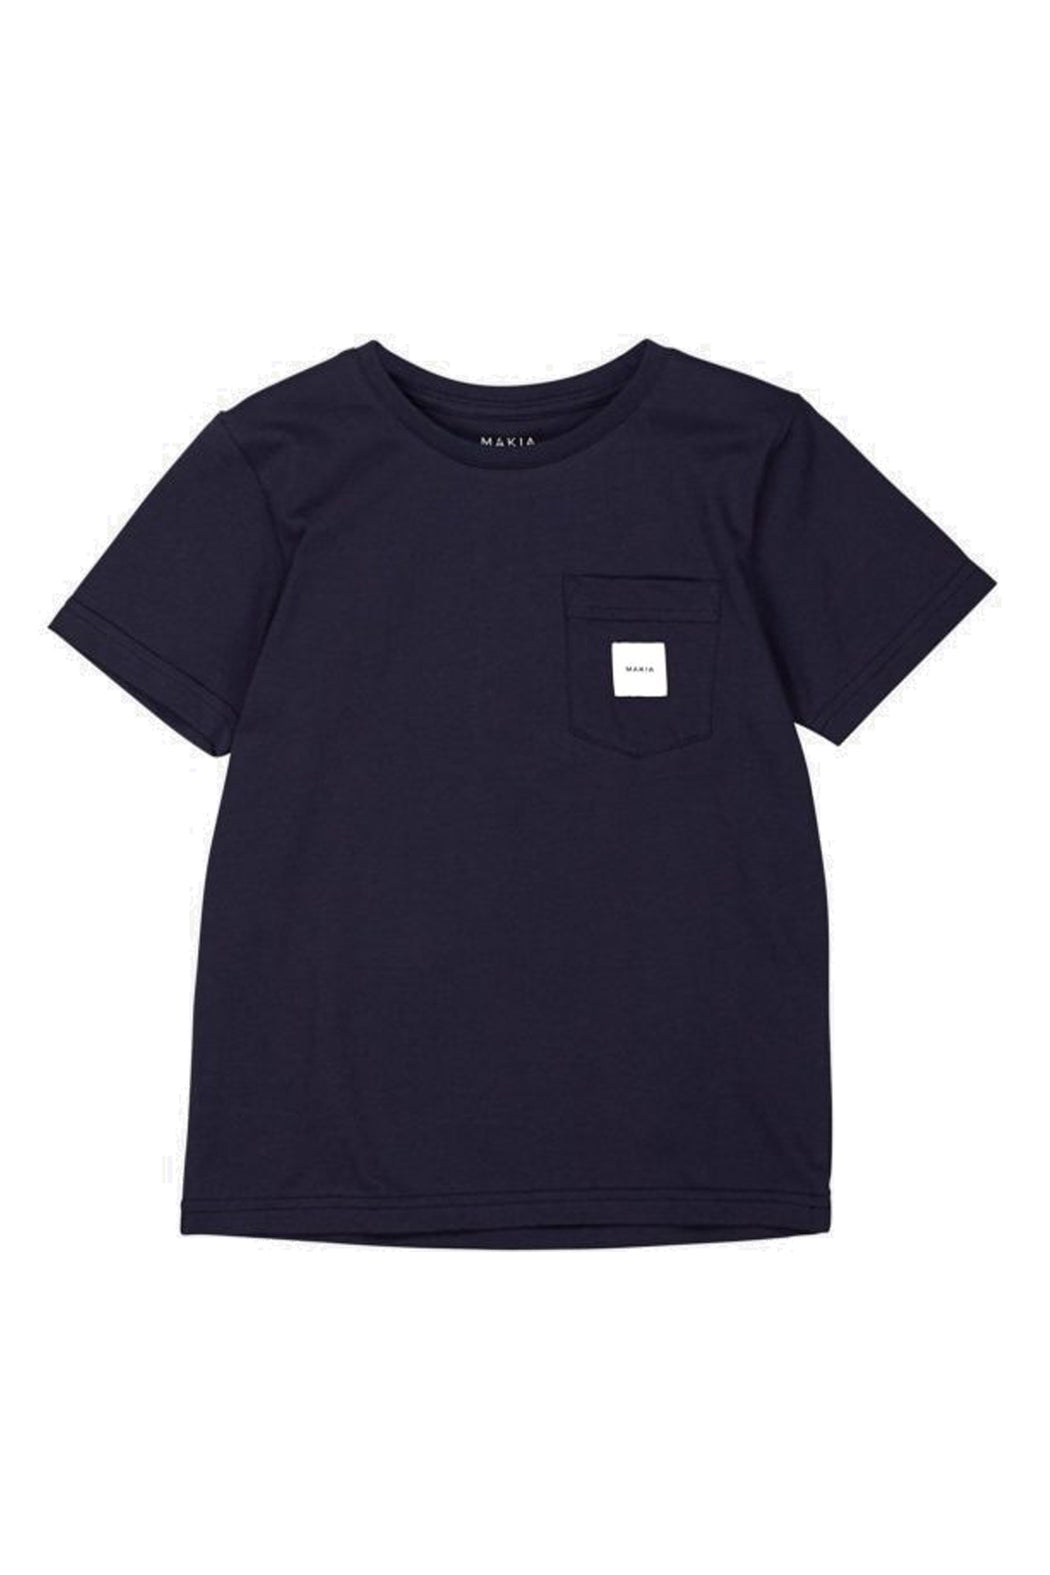 POCKET T-Shirt dark blue